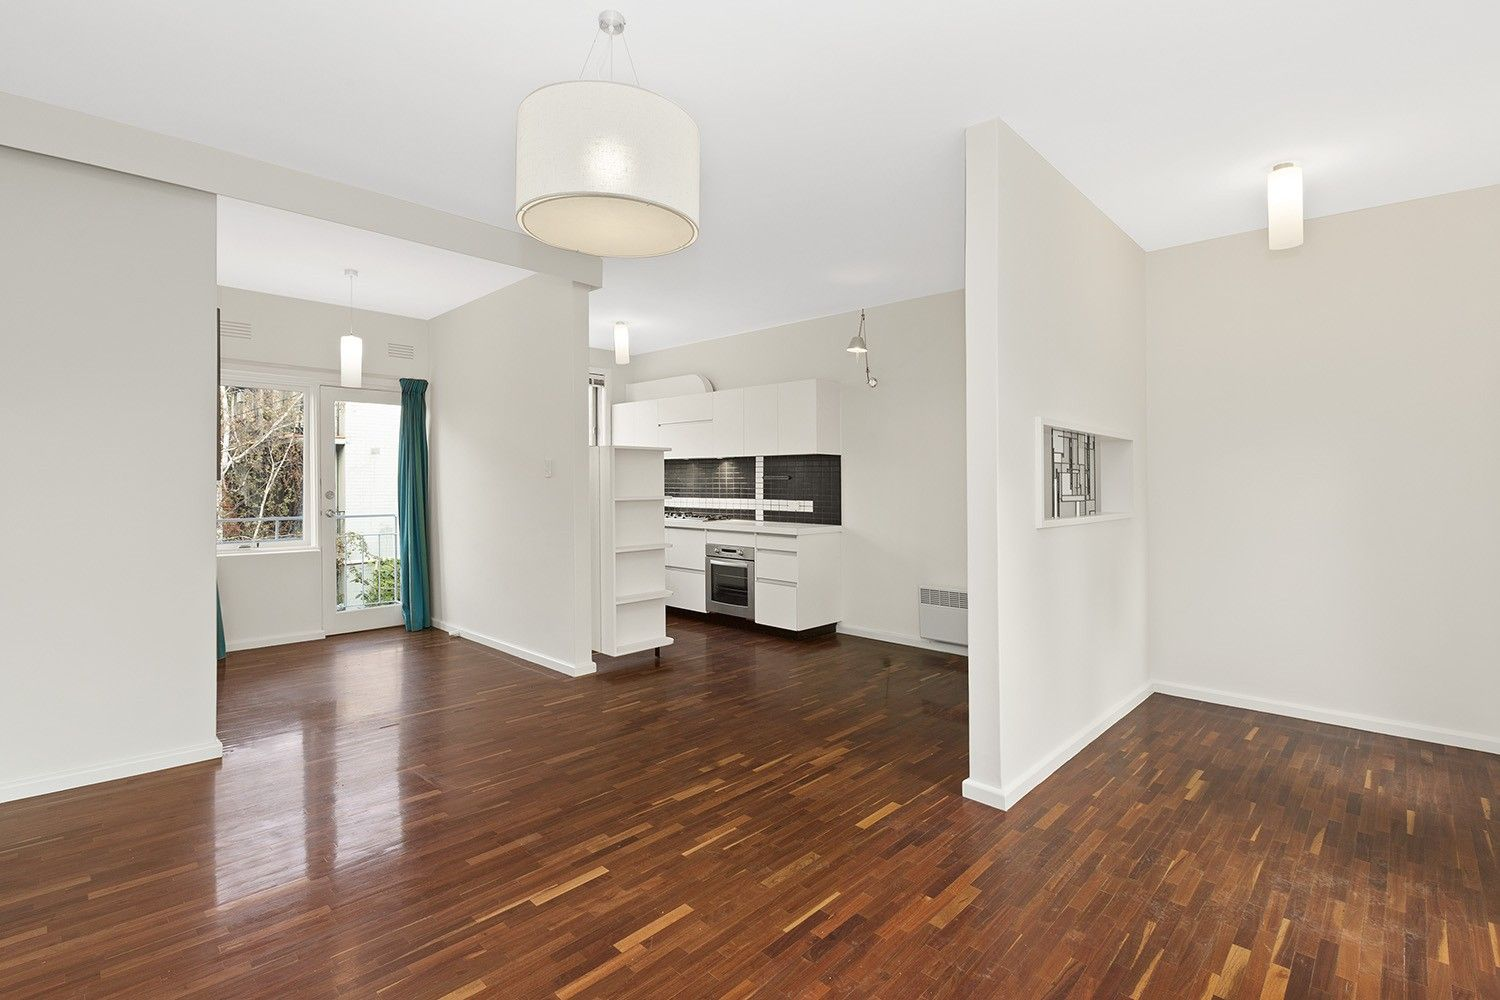 17/211 Gold Street, Clifton Hill VIC 3068, Image 1